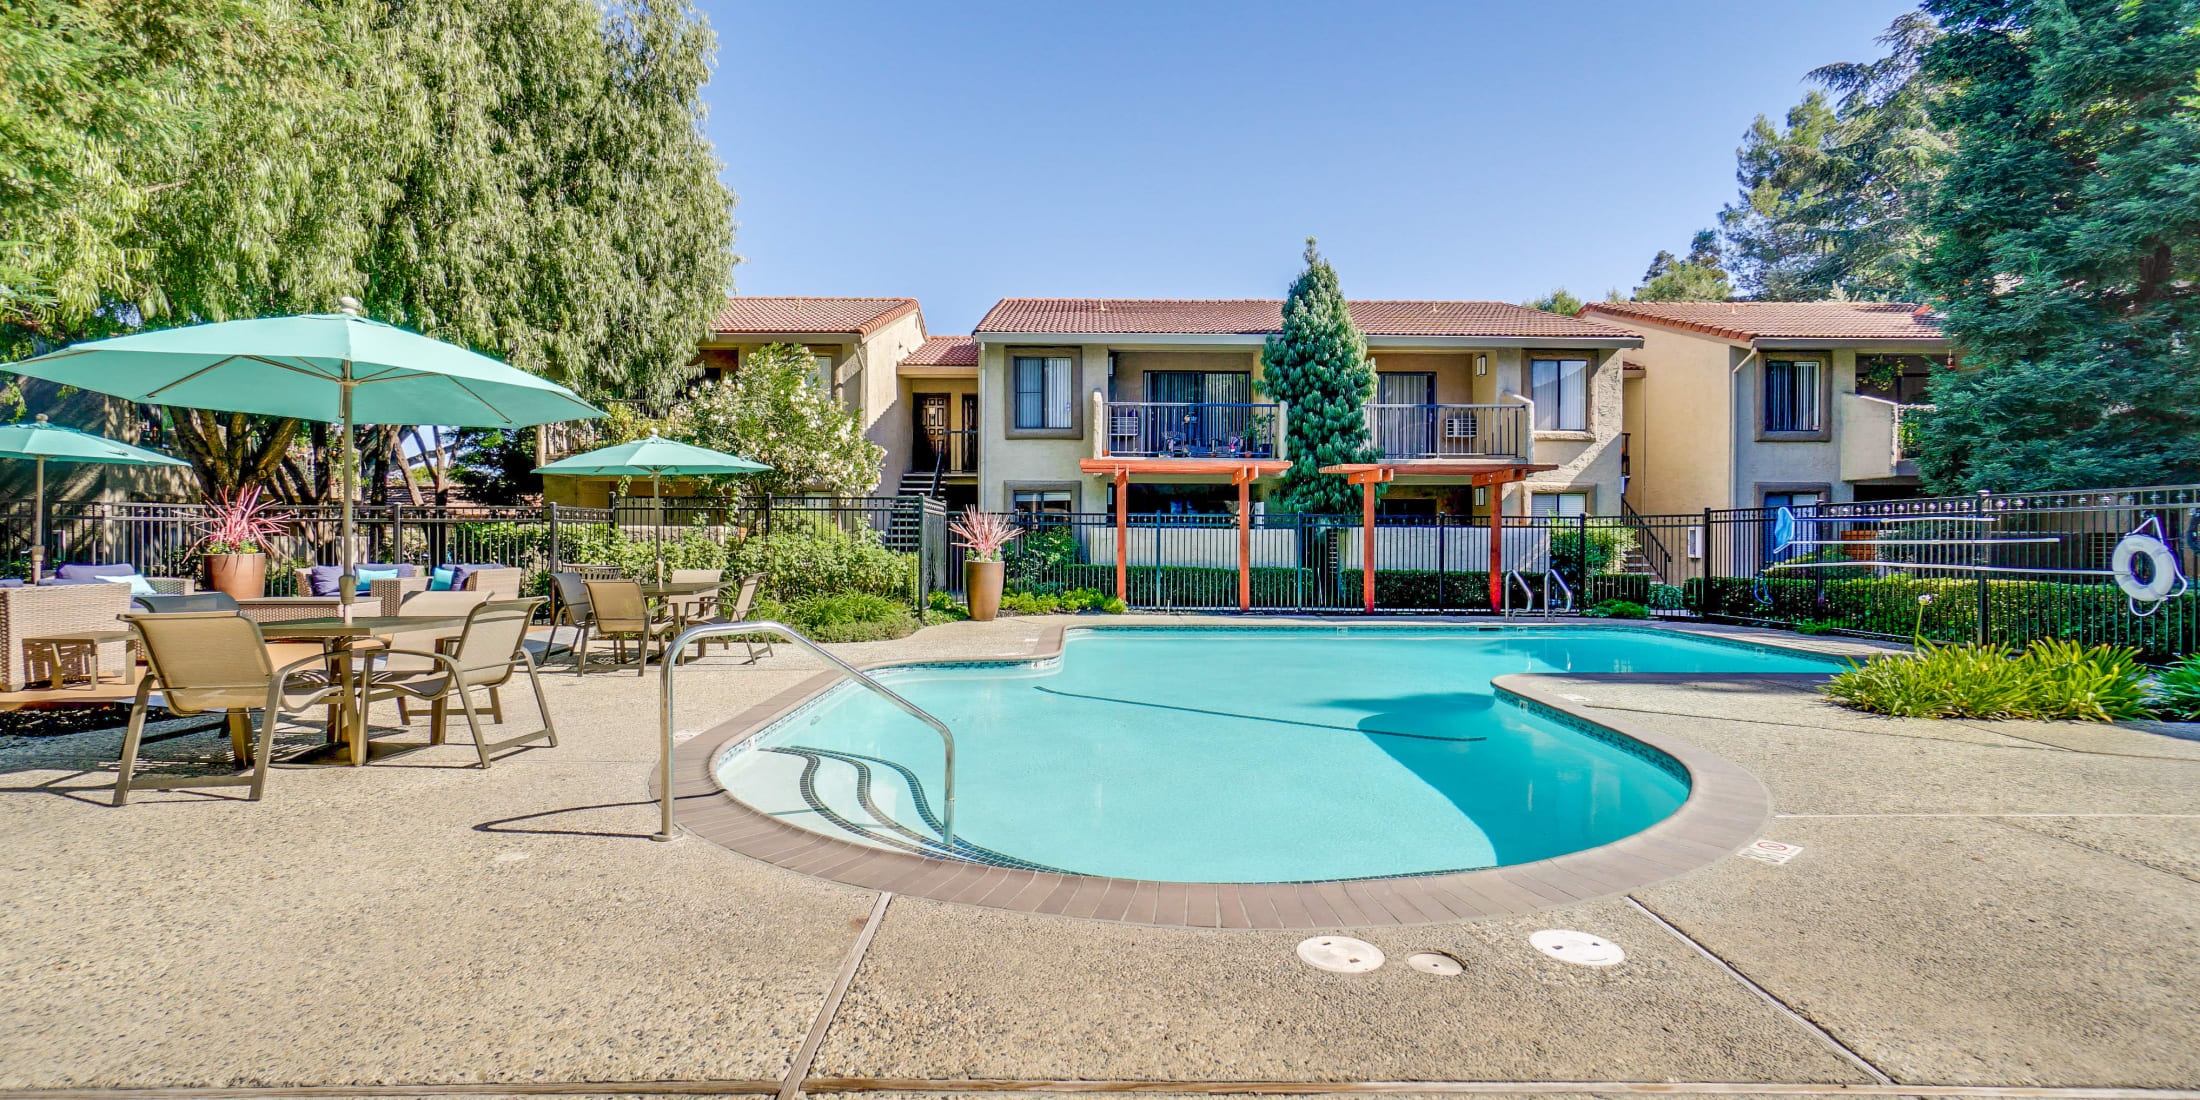 Pet friendly apartments in San Jose